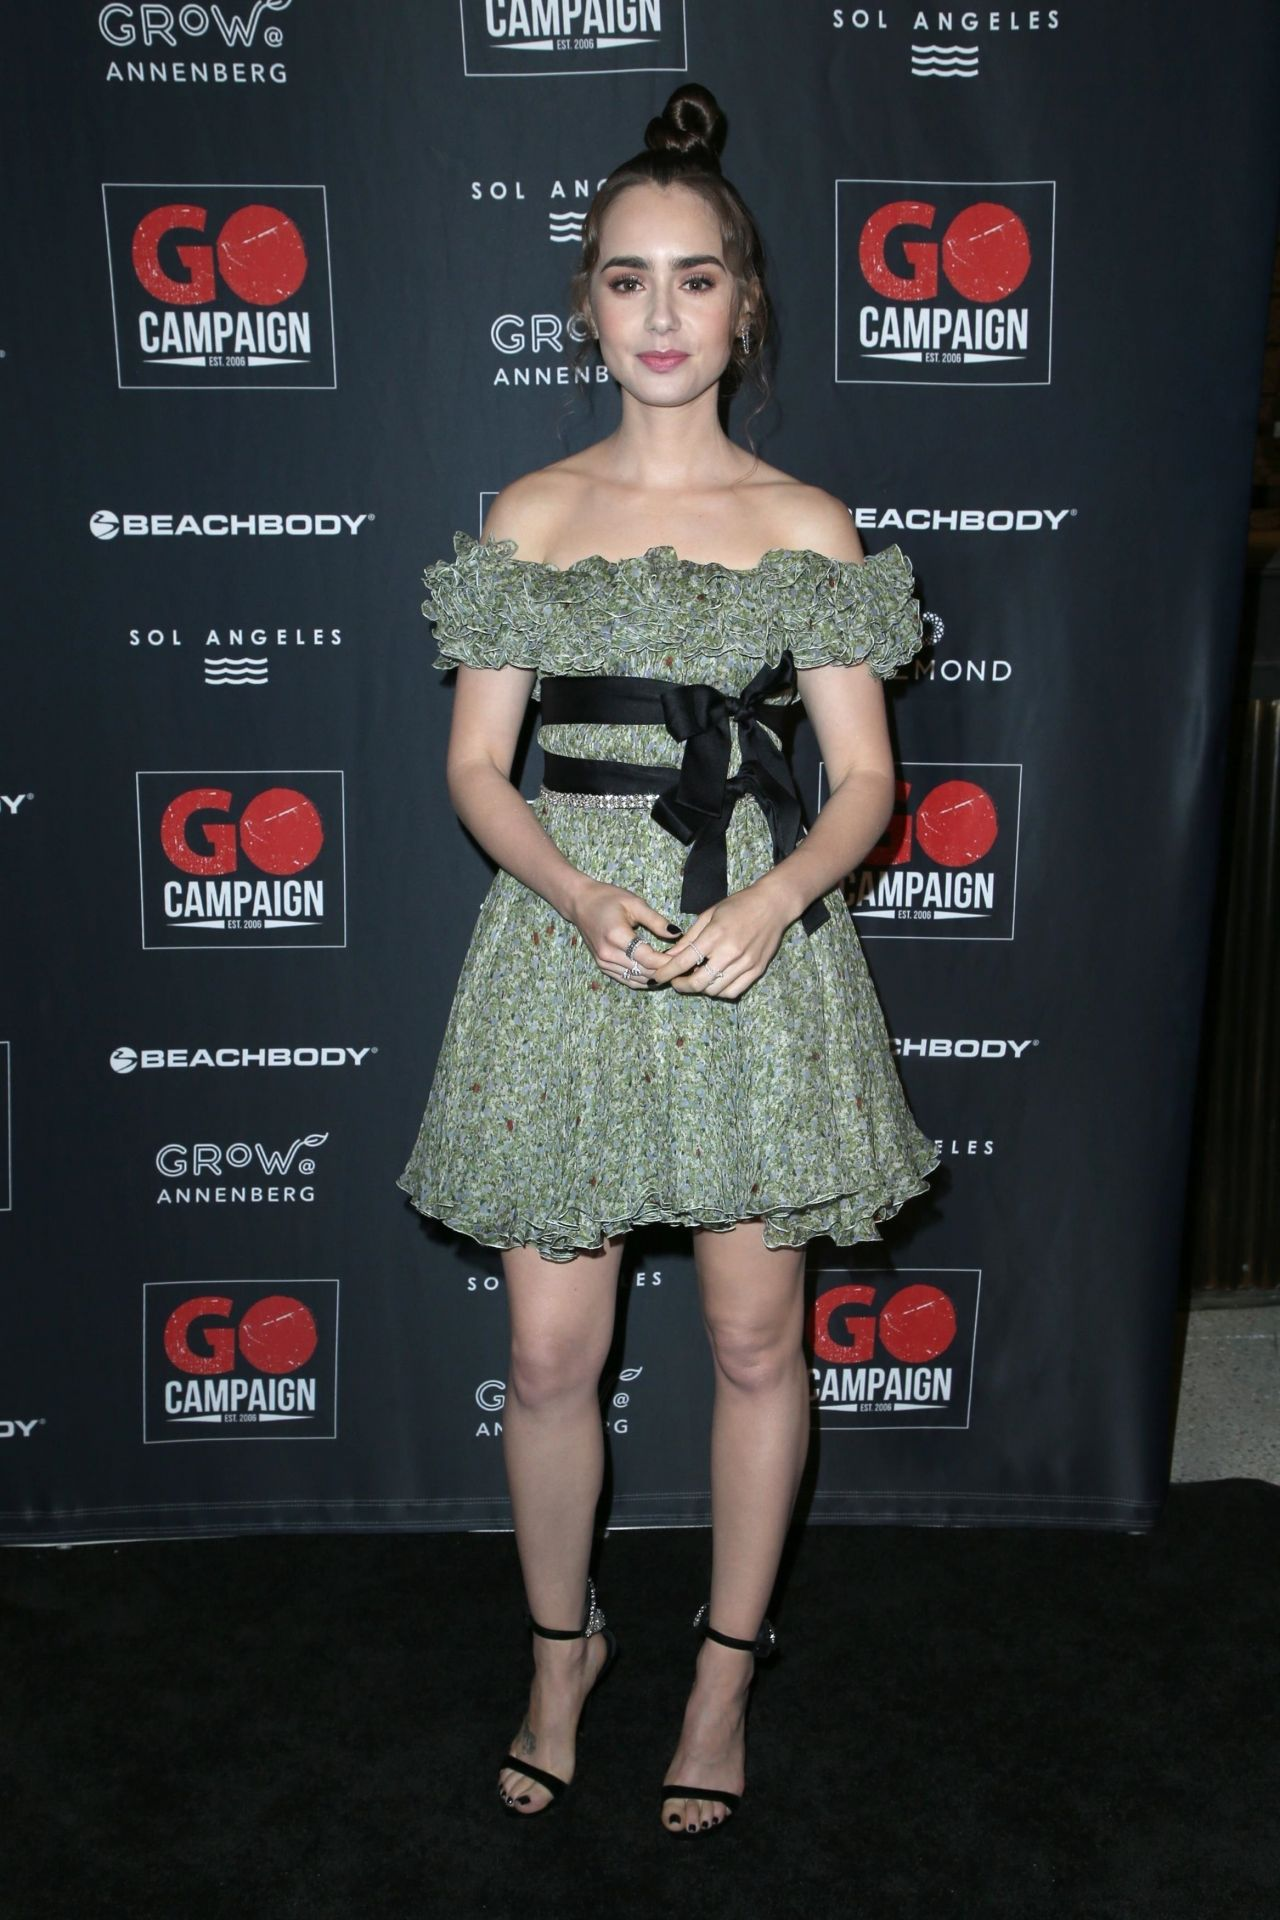 https://celebmafia.com/wp-content/uploads/2018/10/lily-collins-go-campaign-gala-in-los-angeles-10-20-2018-15.jpg